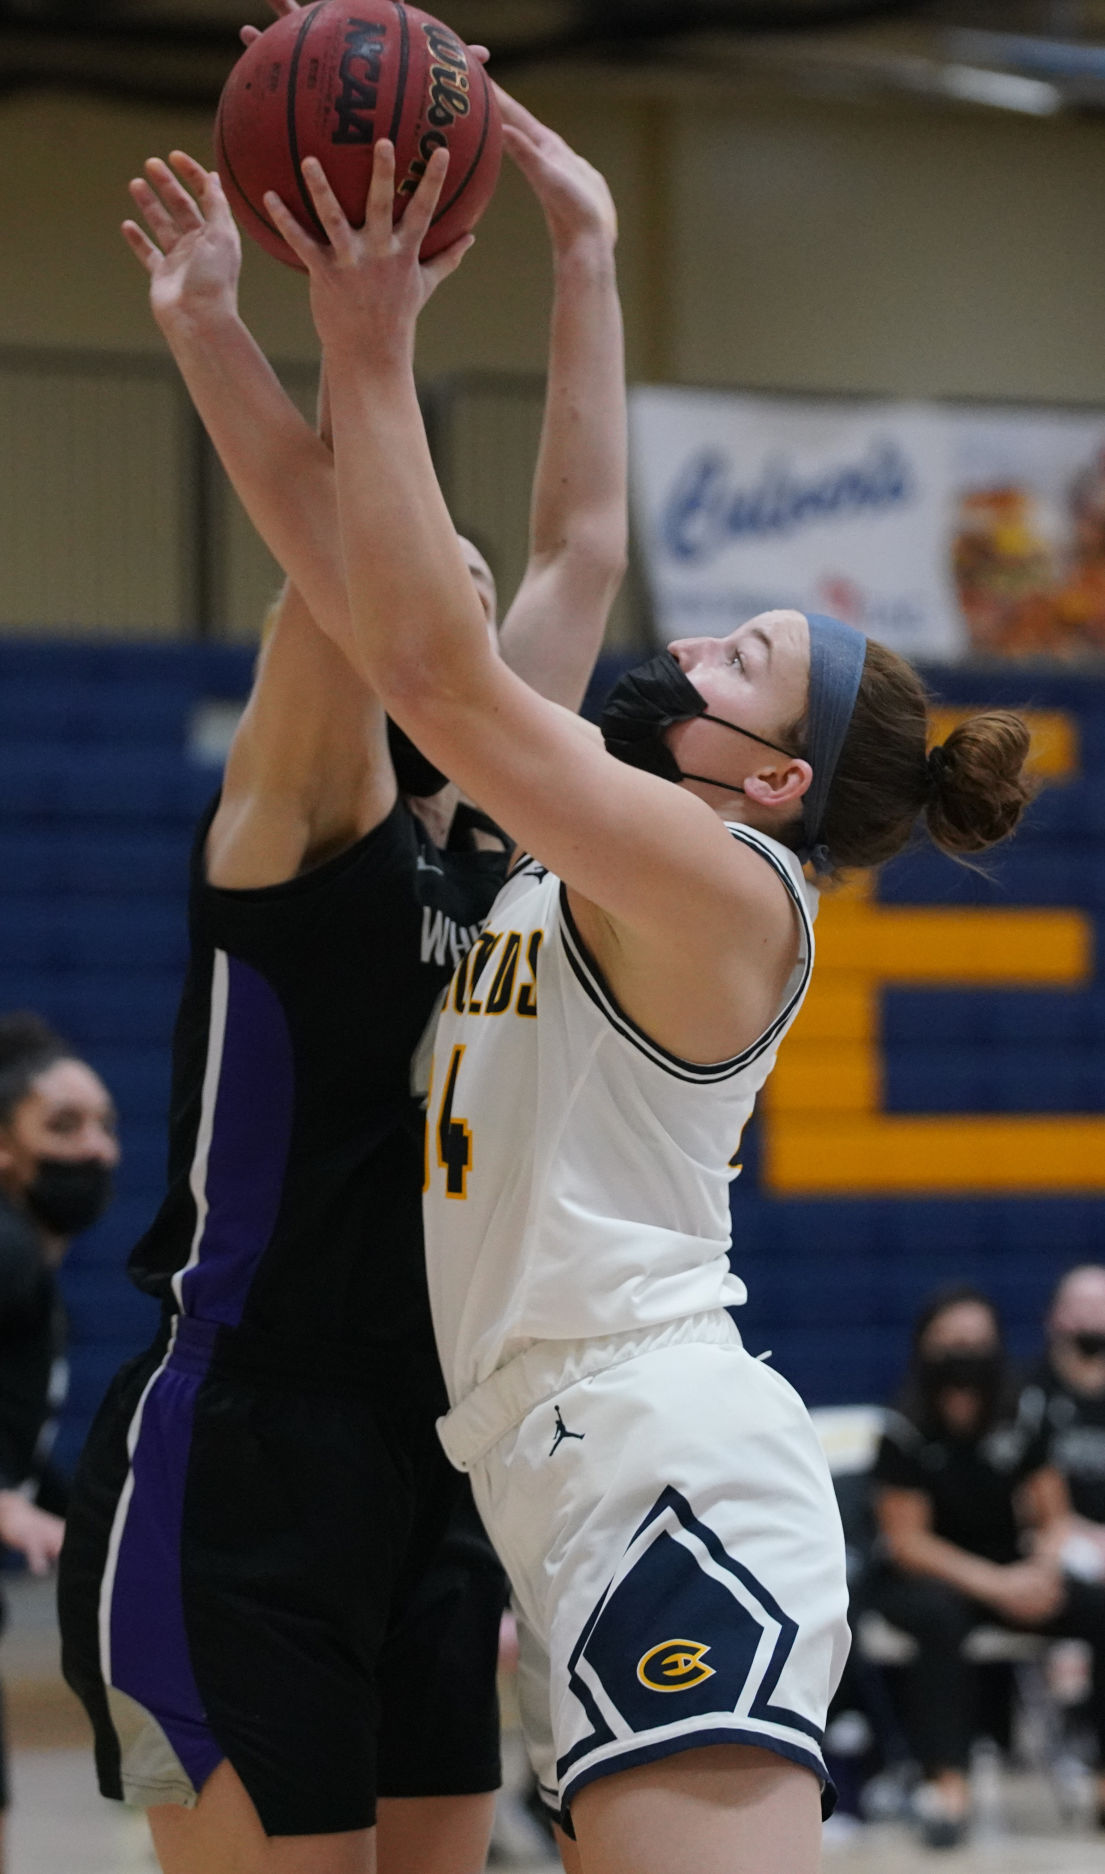 UW-Whitewater at UW-Eau Claire women's basketball